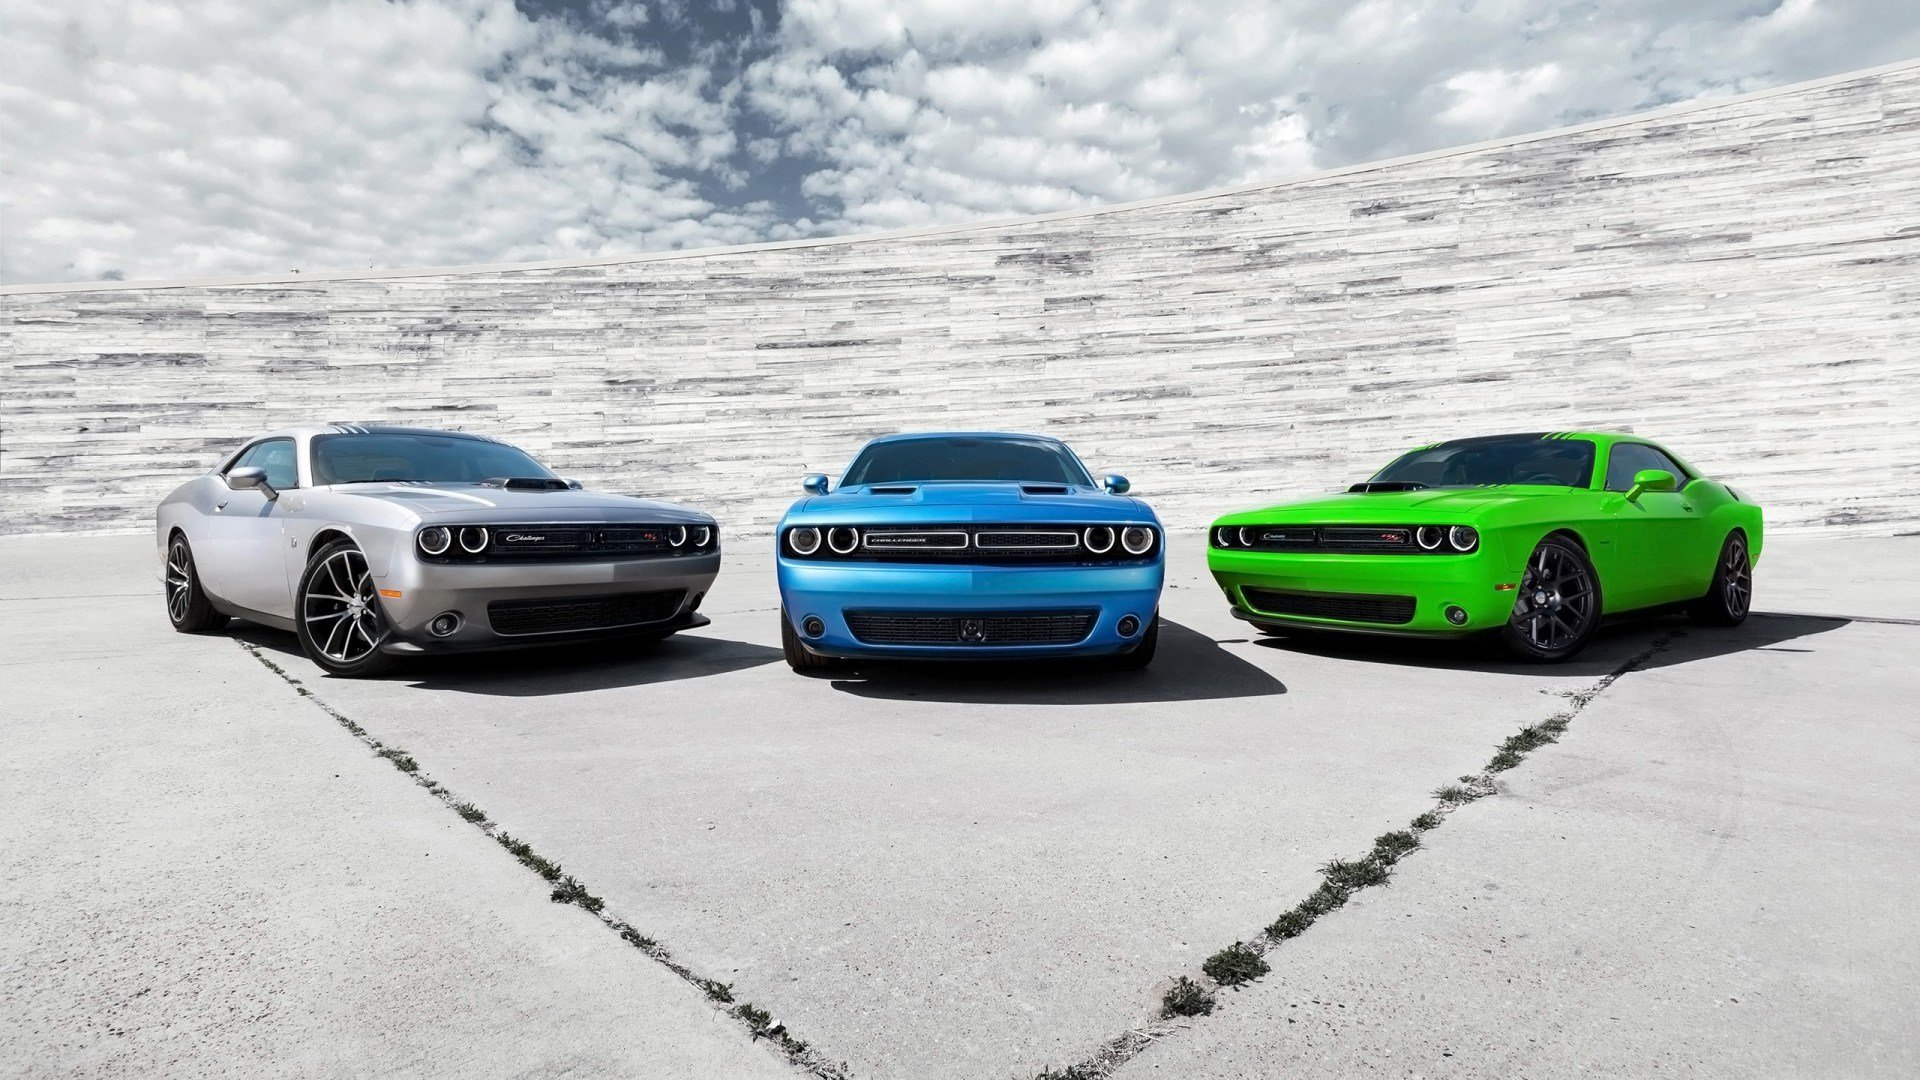 New 2015 Dodge Challenger Cars Wallpapers Hd Wallpapers Id On This Month